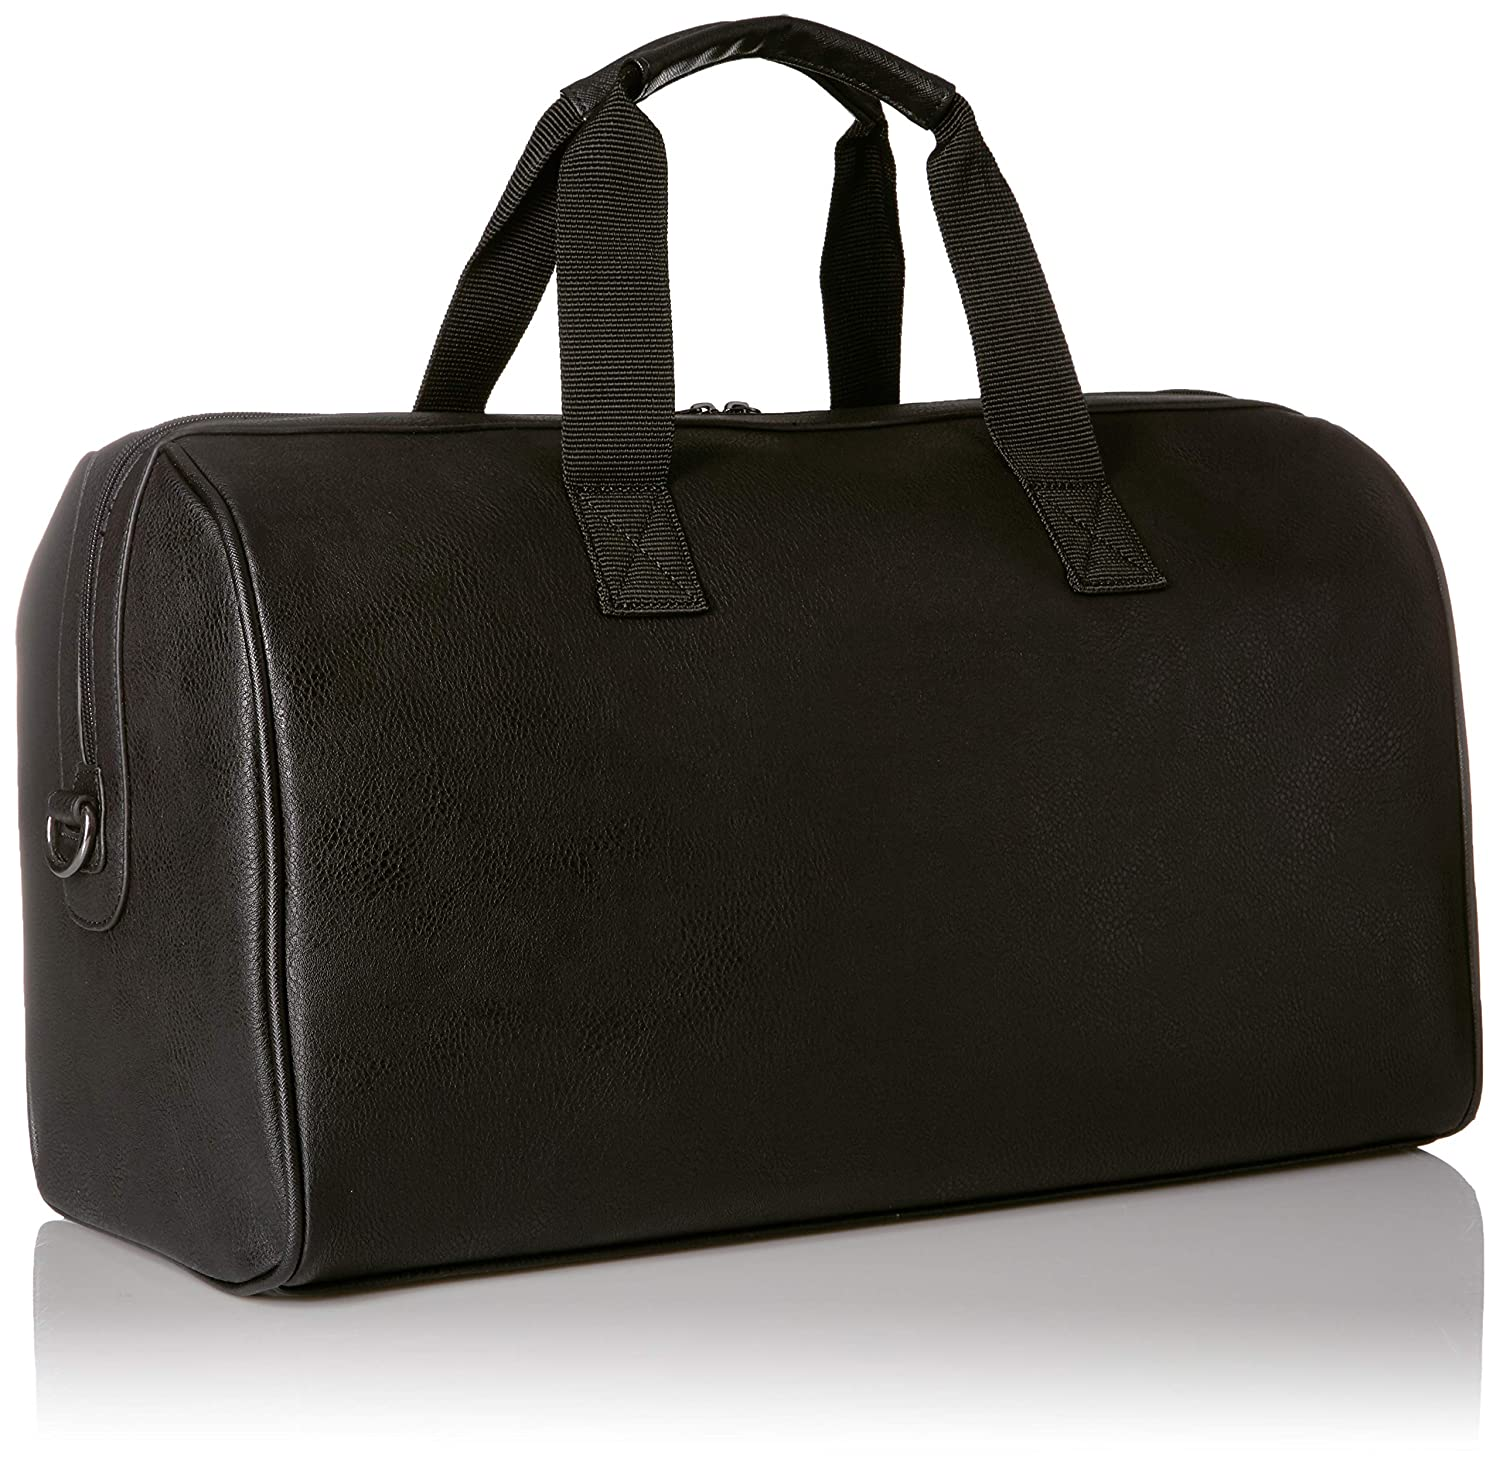 d19ff5bcfe Ted Baker Men's Yours Duffel Bags, Black, One Size: Amazon.co.uk: Clothing